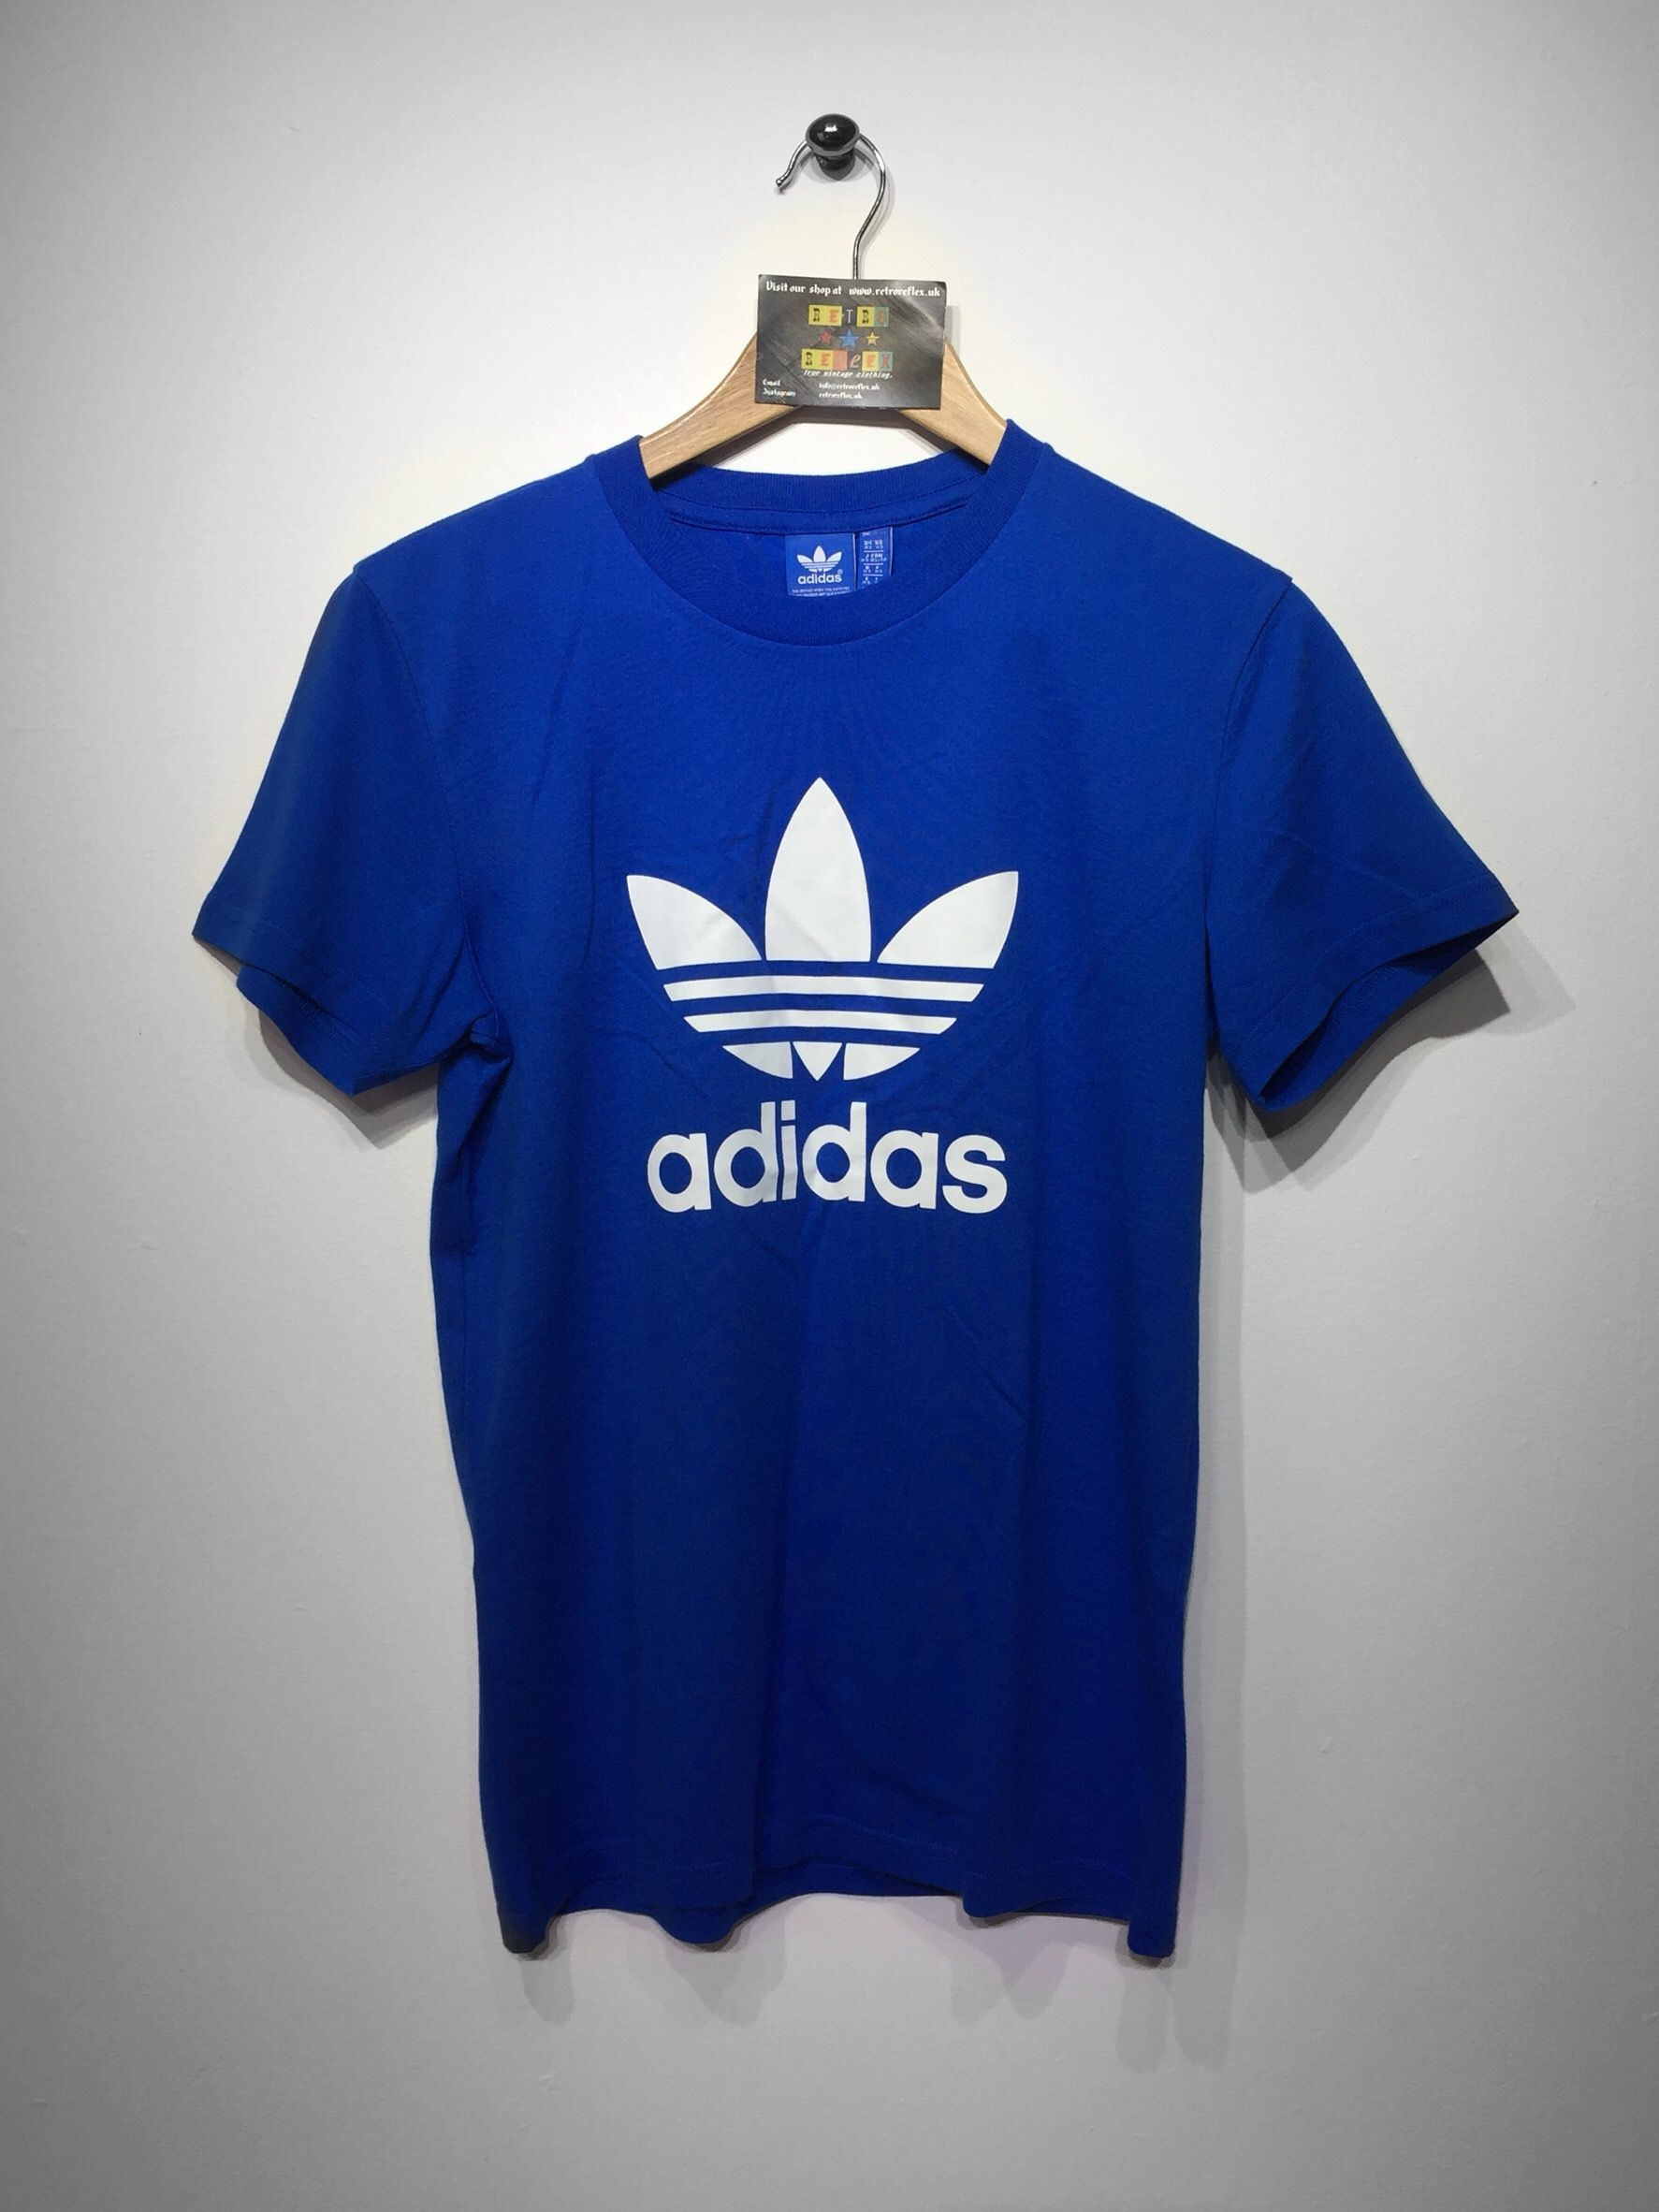 85b5c83e1bf14 Adidas T-shirt Size X Small £16 Website➡ www.retroreflex.uk ...